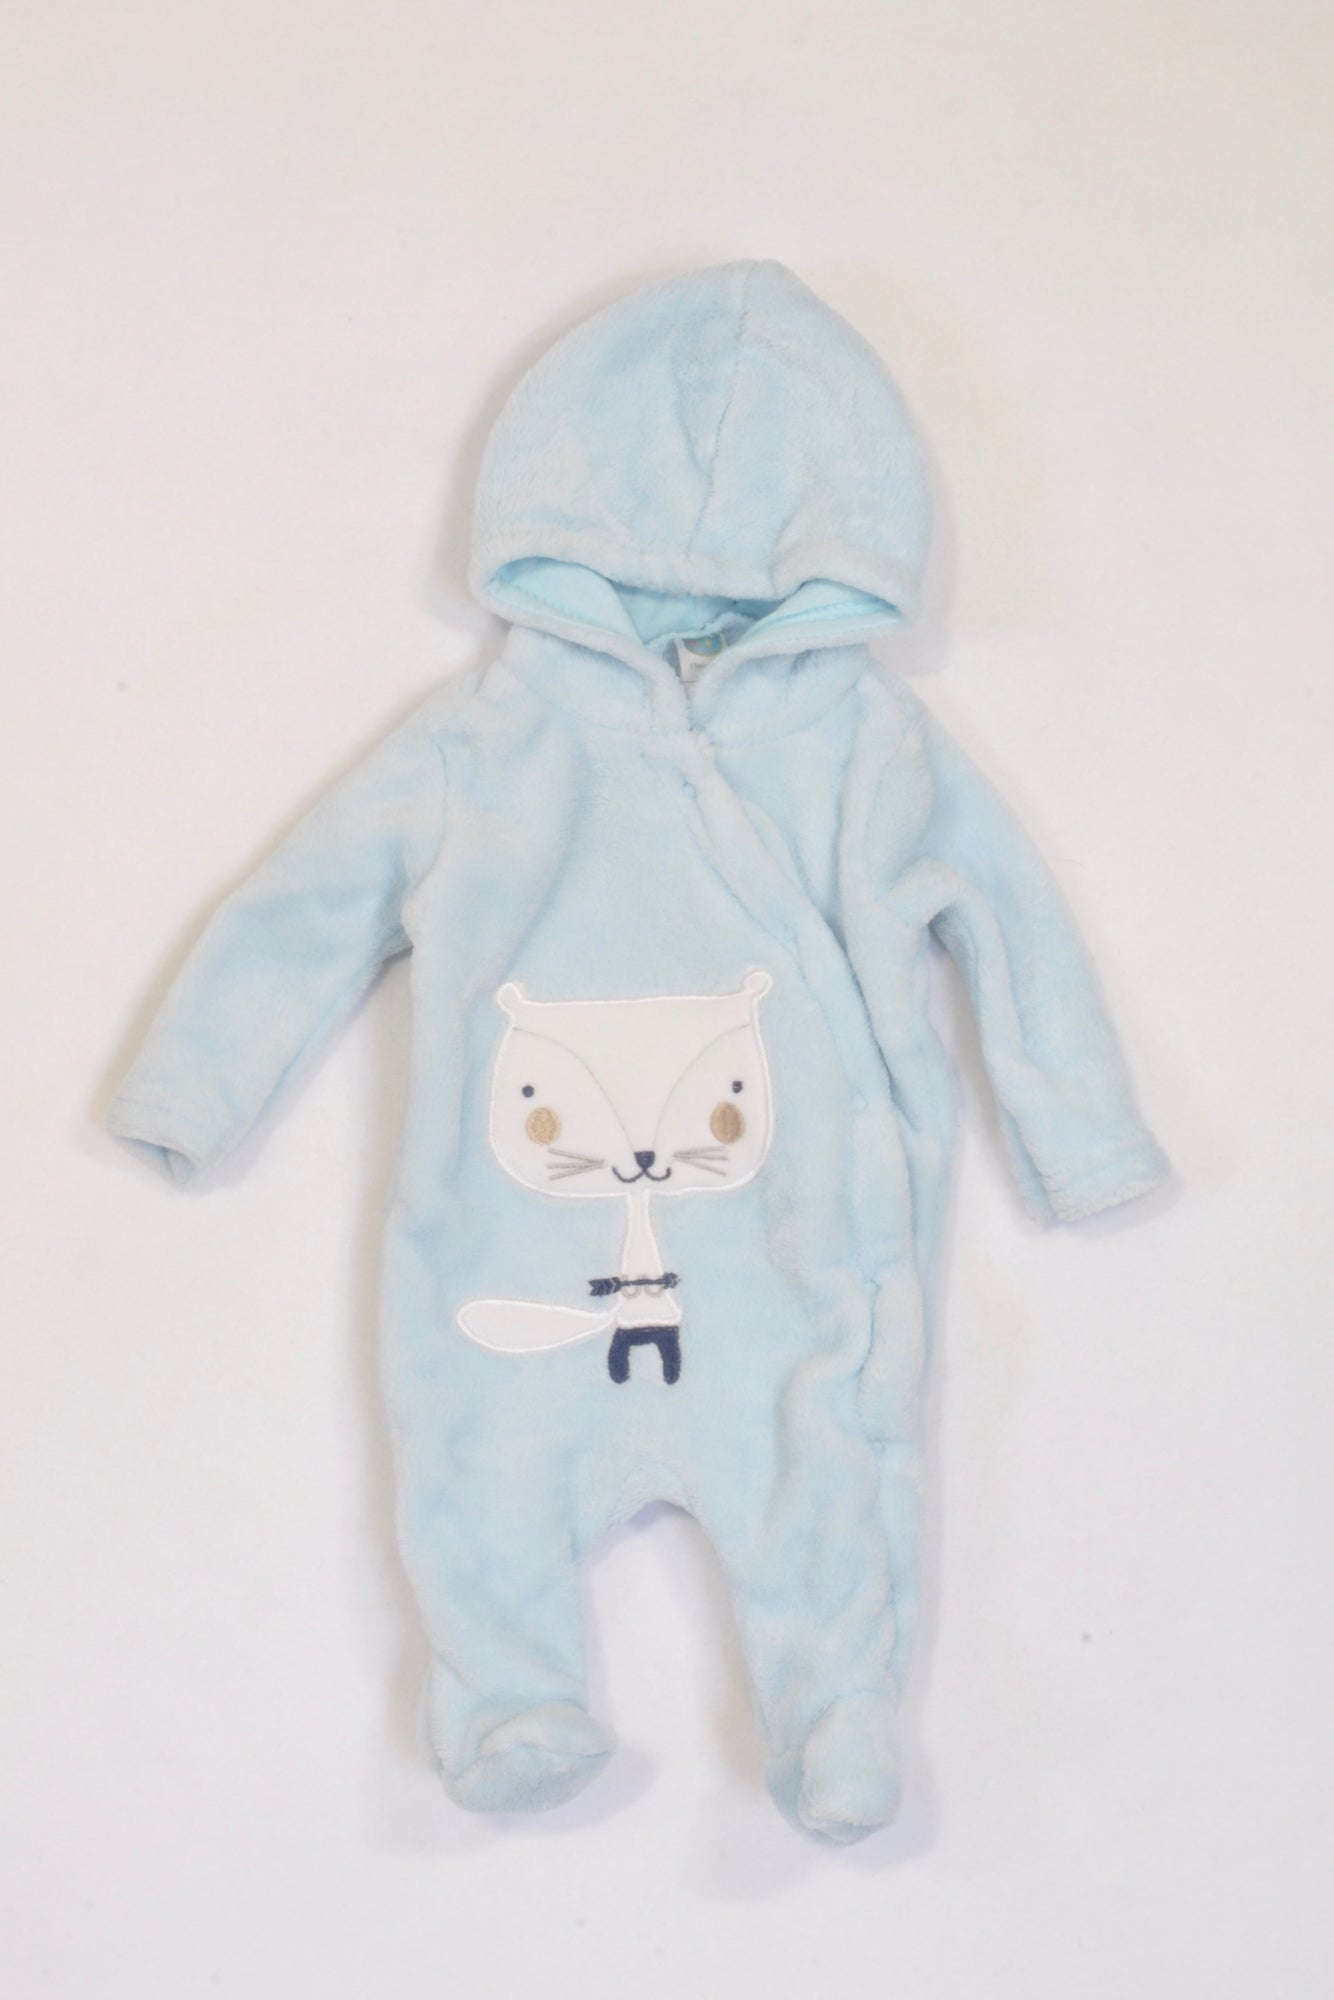 Ackermans Soft Blue Hooded Fleece Fox 1 of 2 Onesie Boys N-B